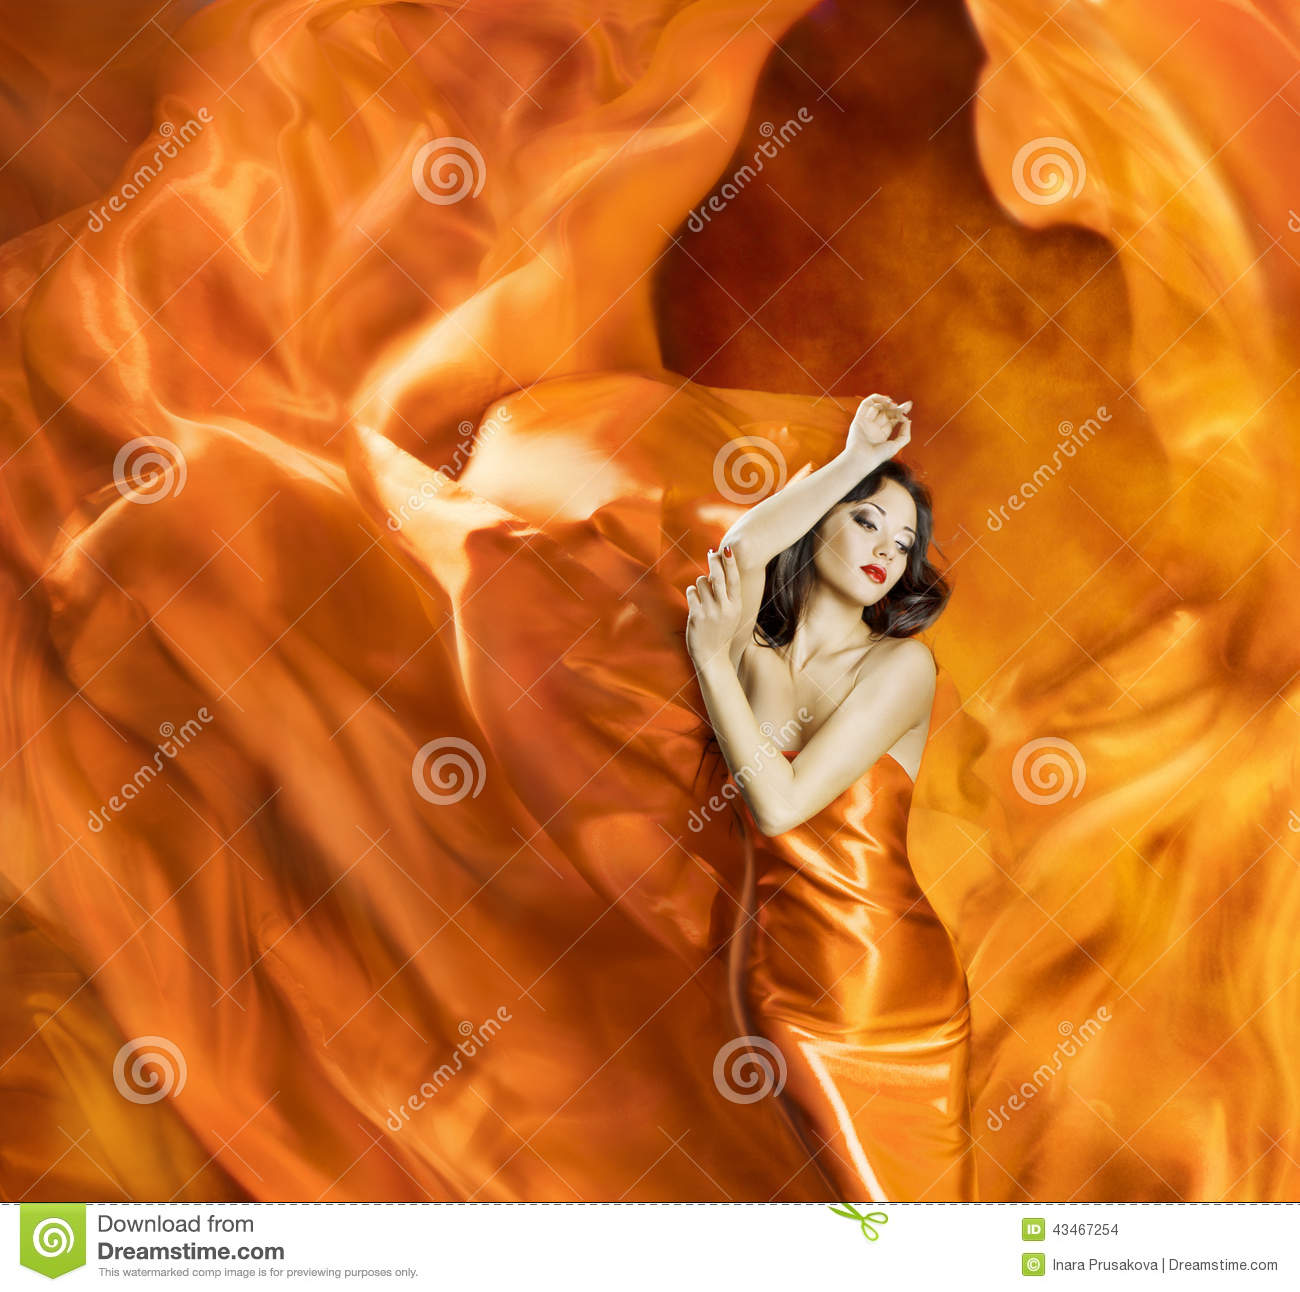 Woman dancing silk dress fire flame artistic orange burning blow